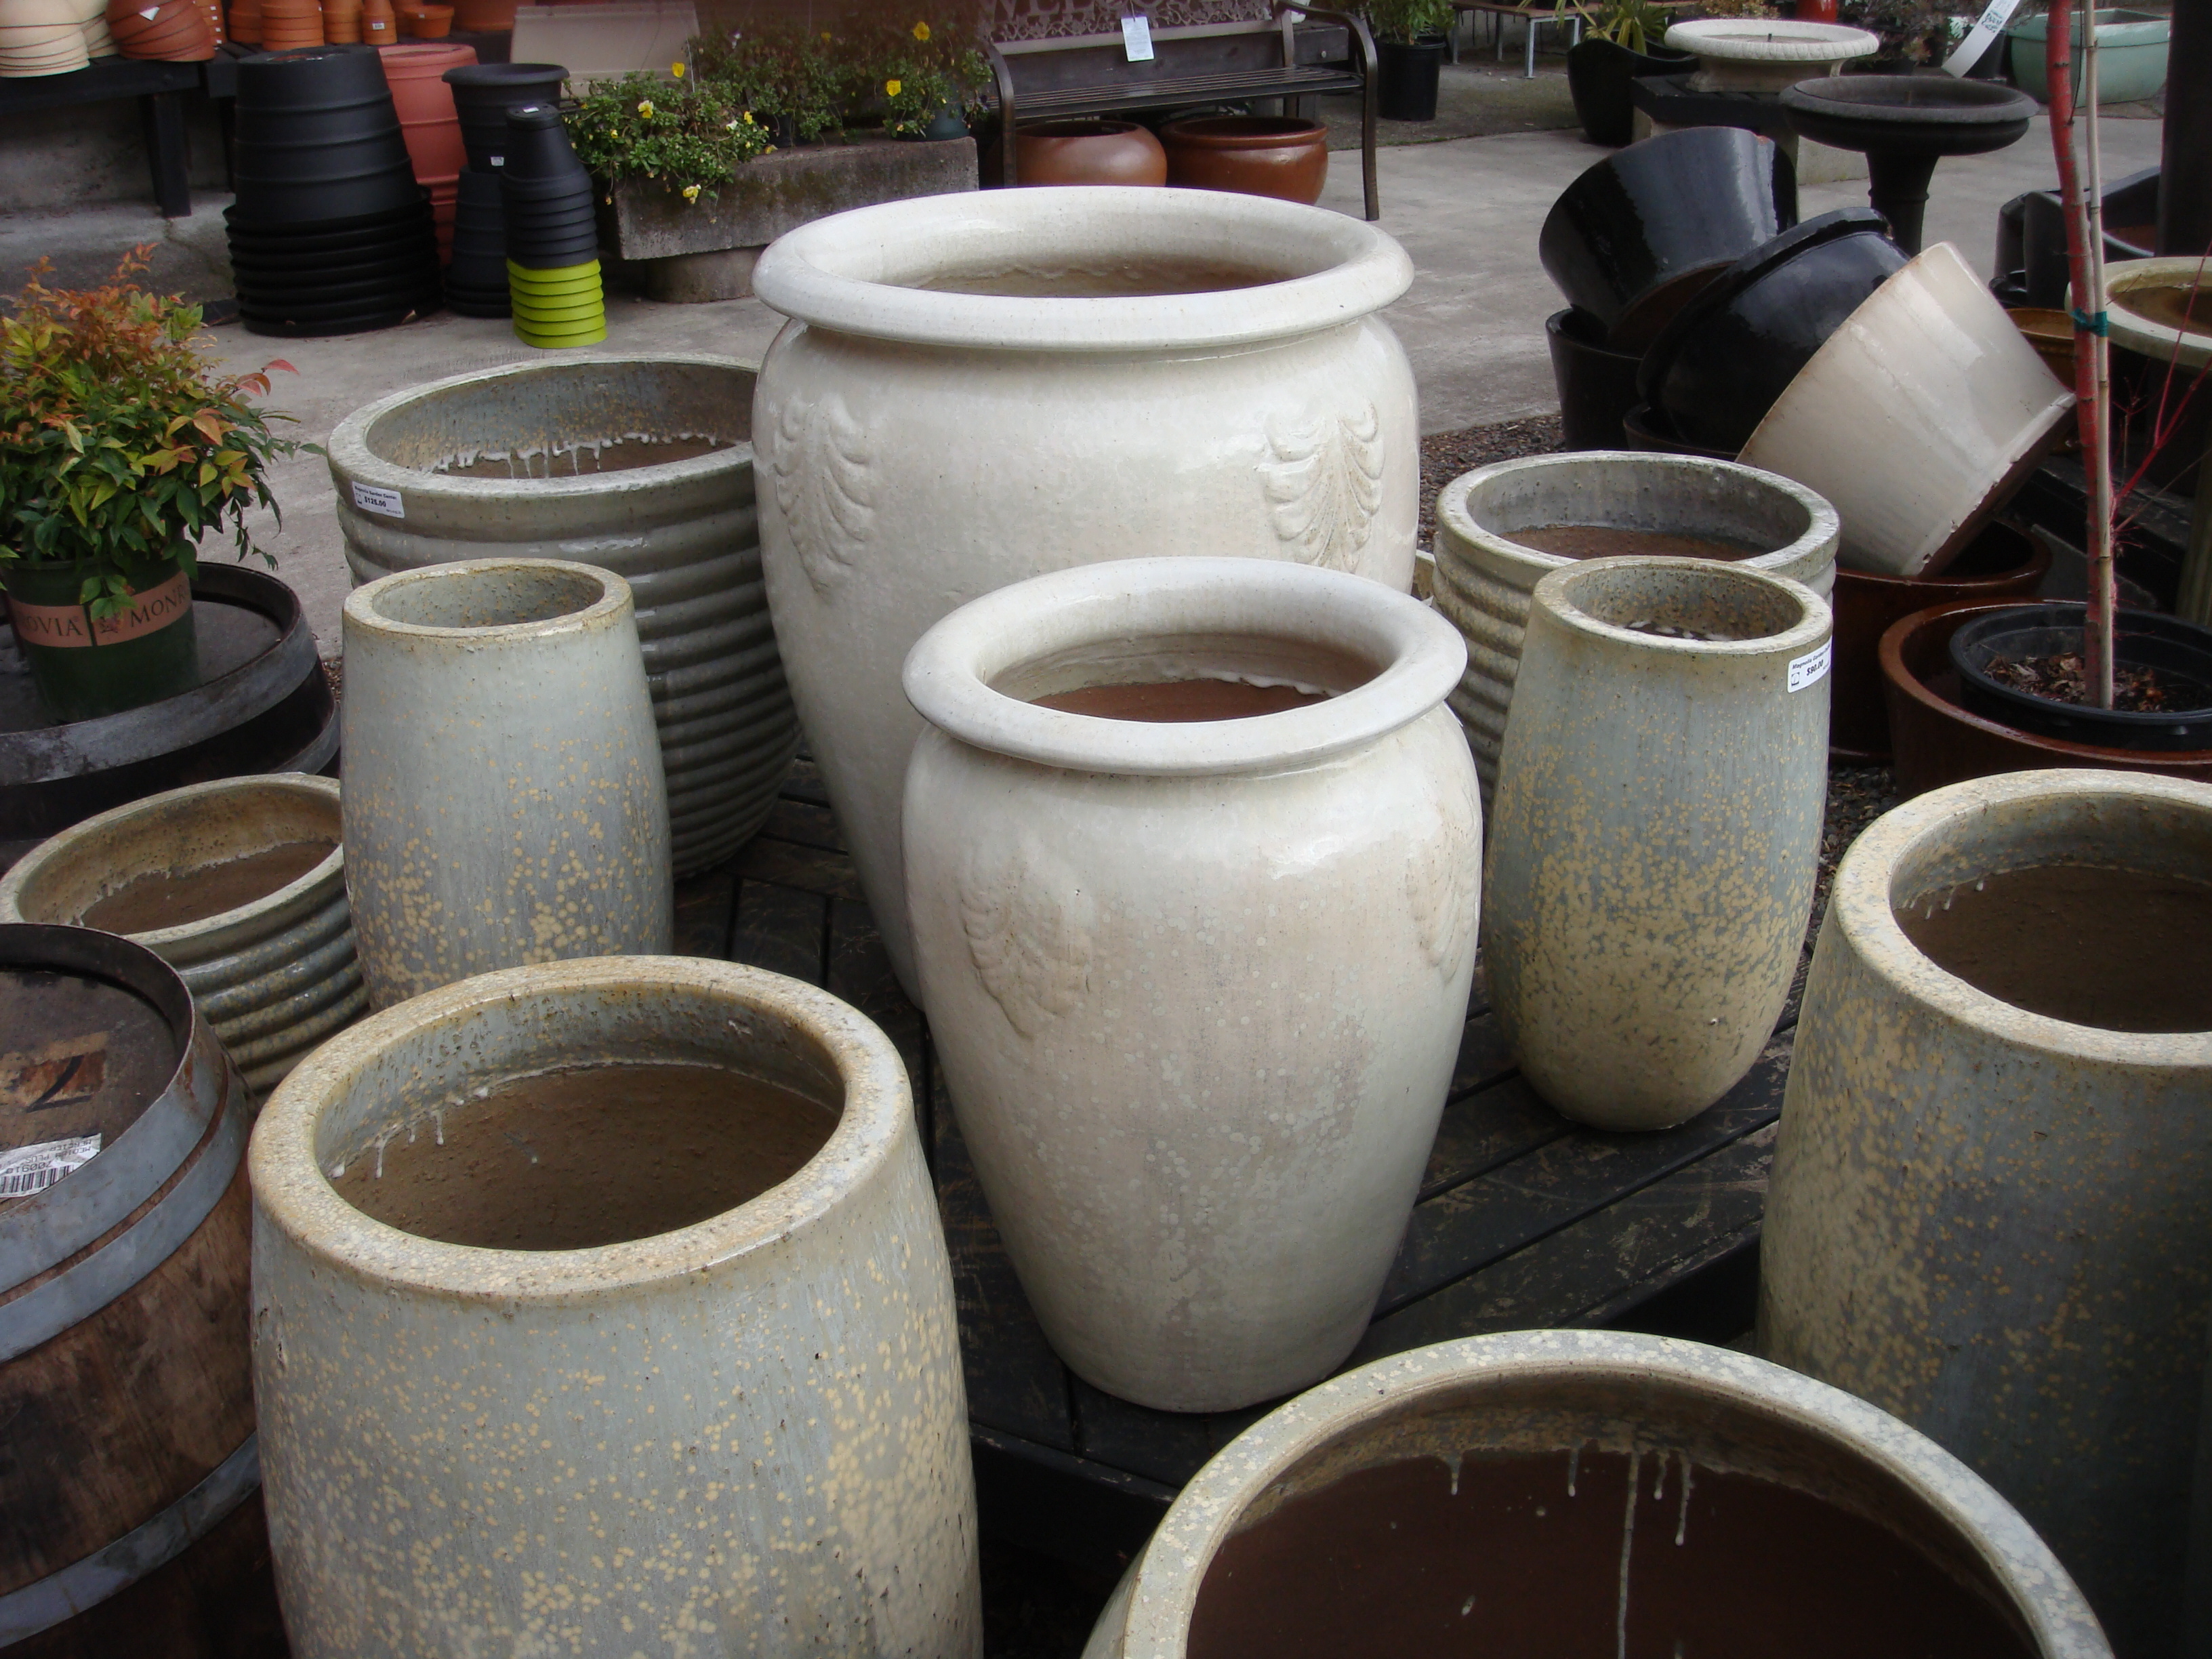 ceramic plant pots magnolia garden center seattle wa containers and pots 30025